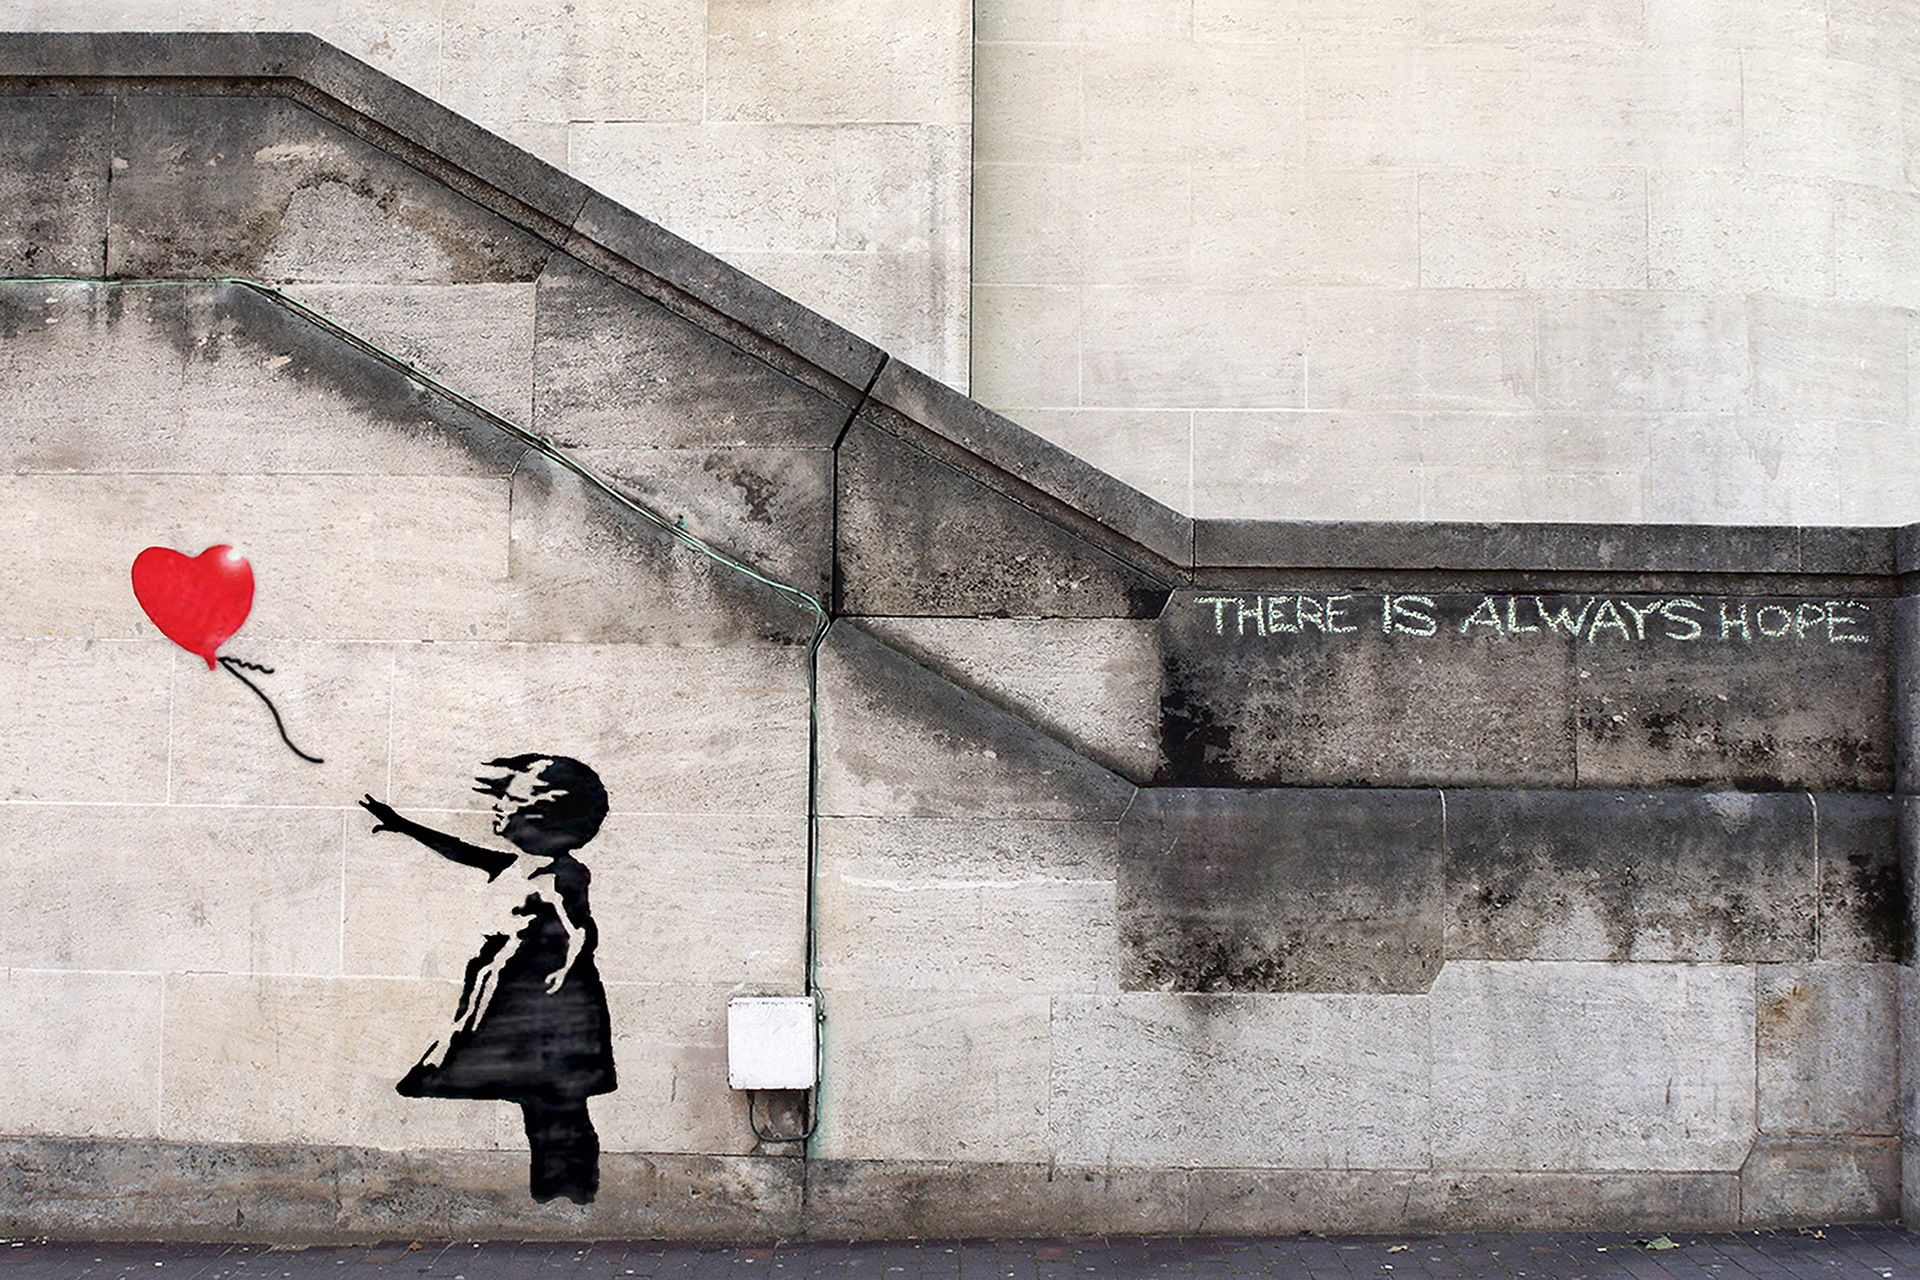 Banksy: There is always hope